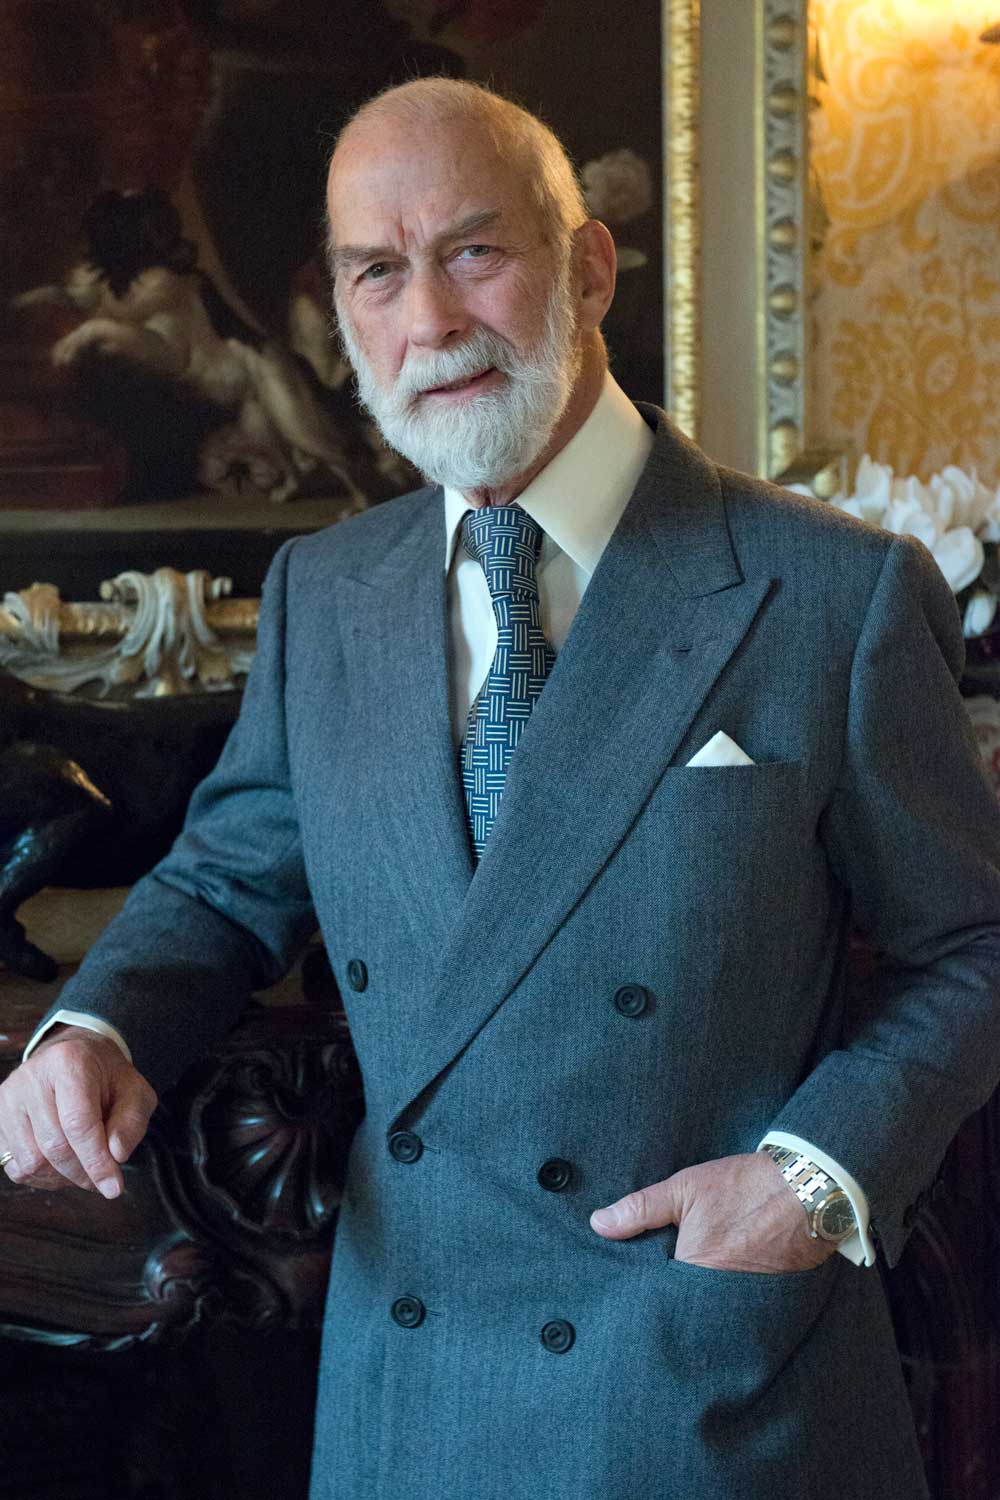 HRH Prince Michael of Kent and his bi-metal Audemars Piguet Royal Oak; photograph taken in Kensington Palace London, December 2014 (Wikimedia Commons / Allan Warren)